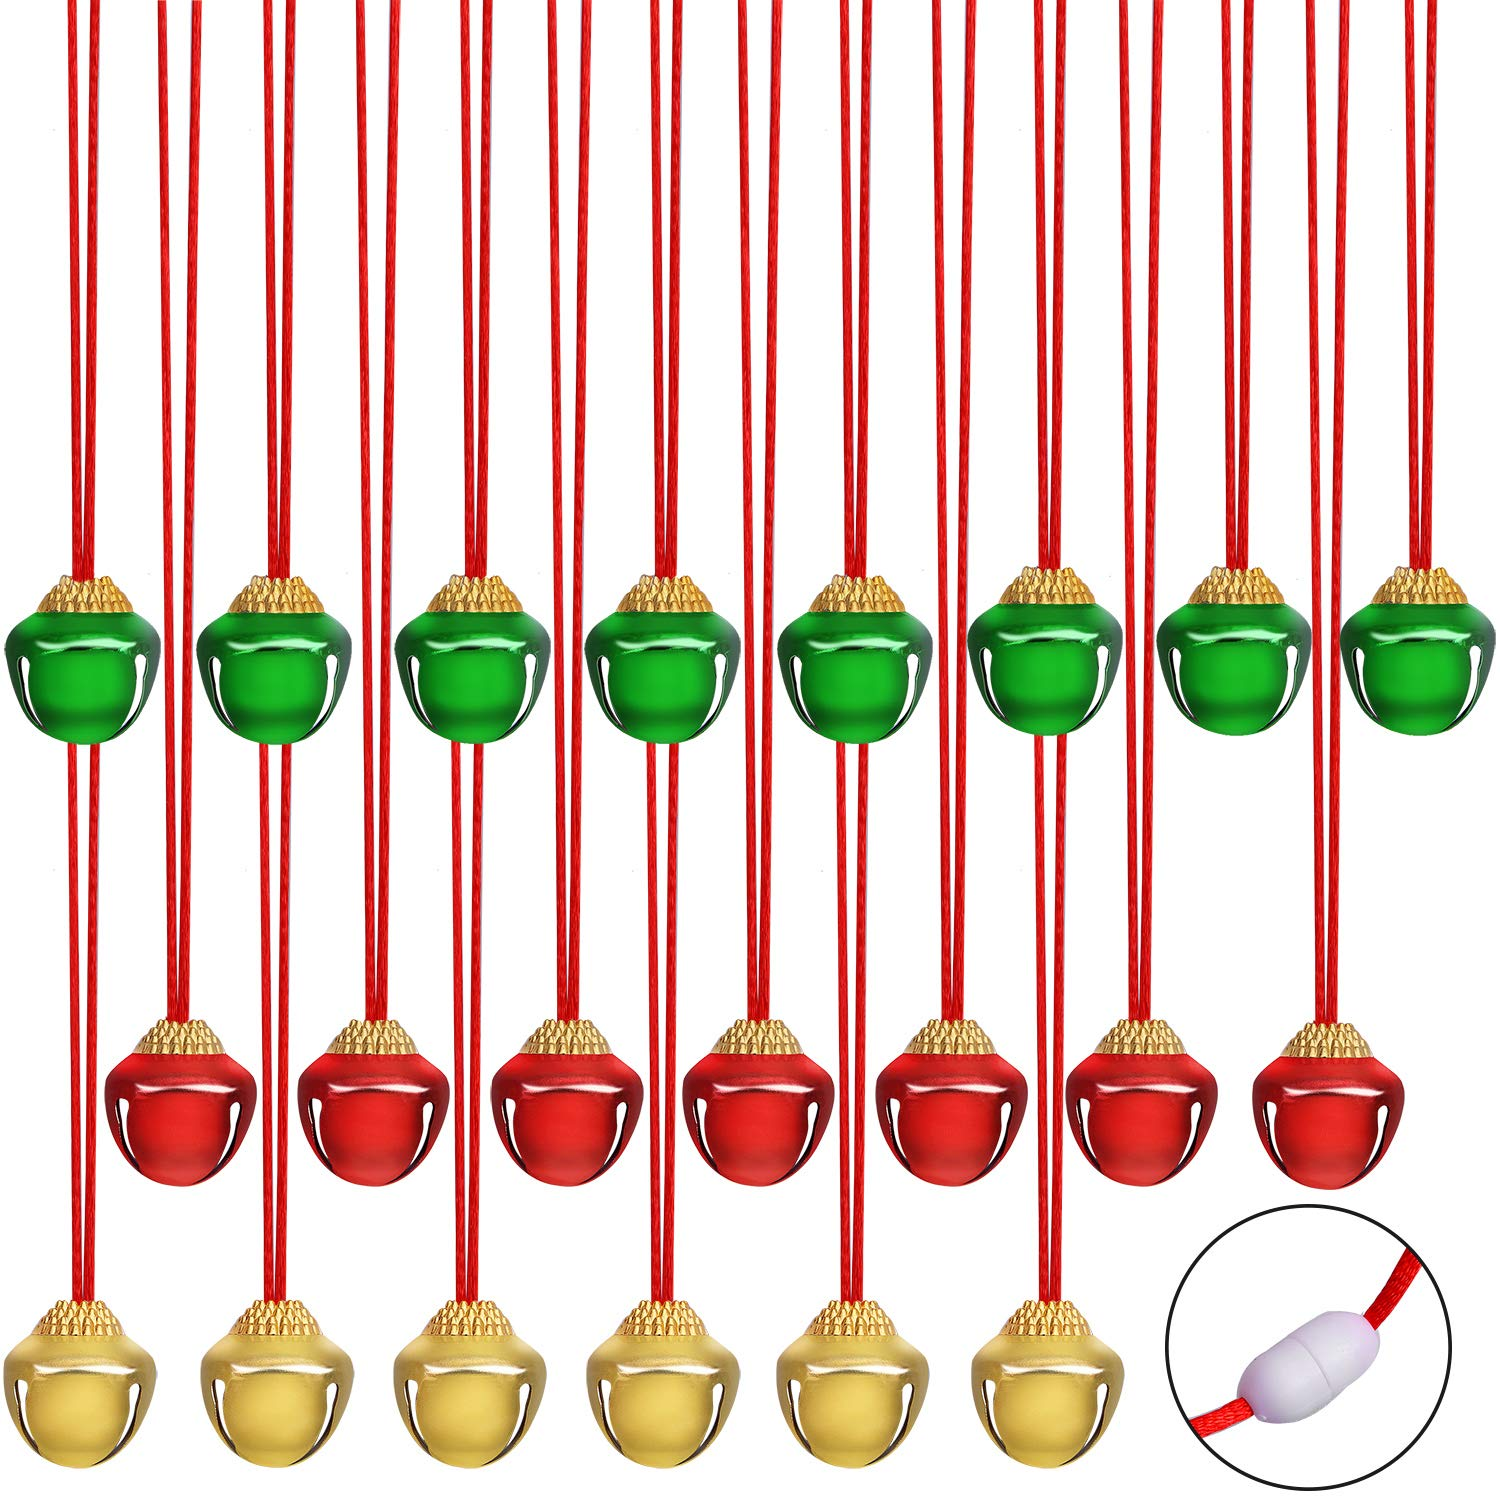 URATOT 24 Pieces Christmas Jingle Bell Necklaces Christmas Decoration Bell Necklaces with Connect Ribbons for Christmas Supplies (Red, Golden, Green) by URATOT